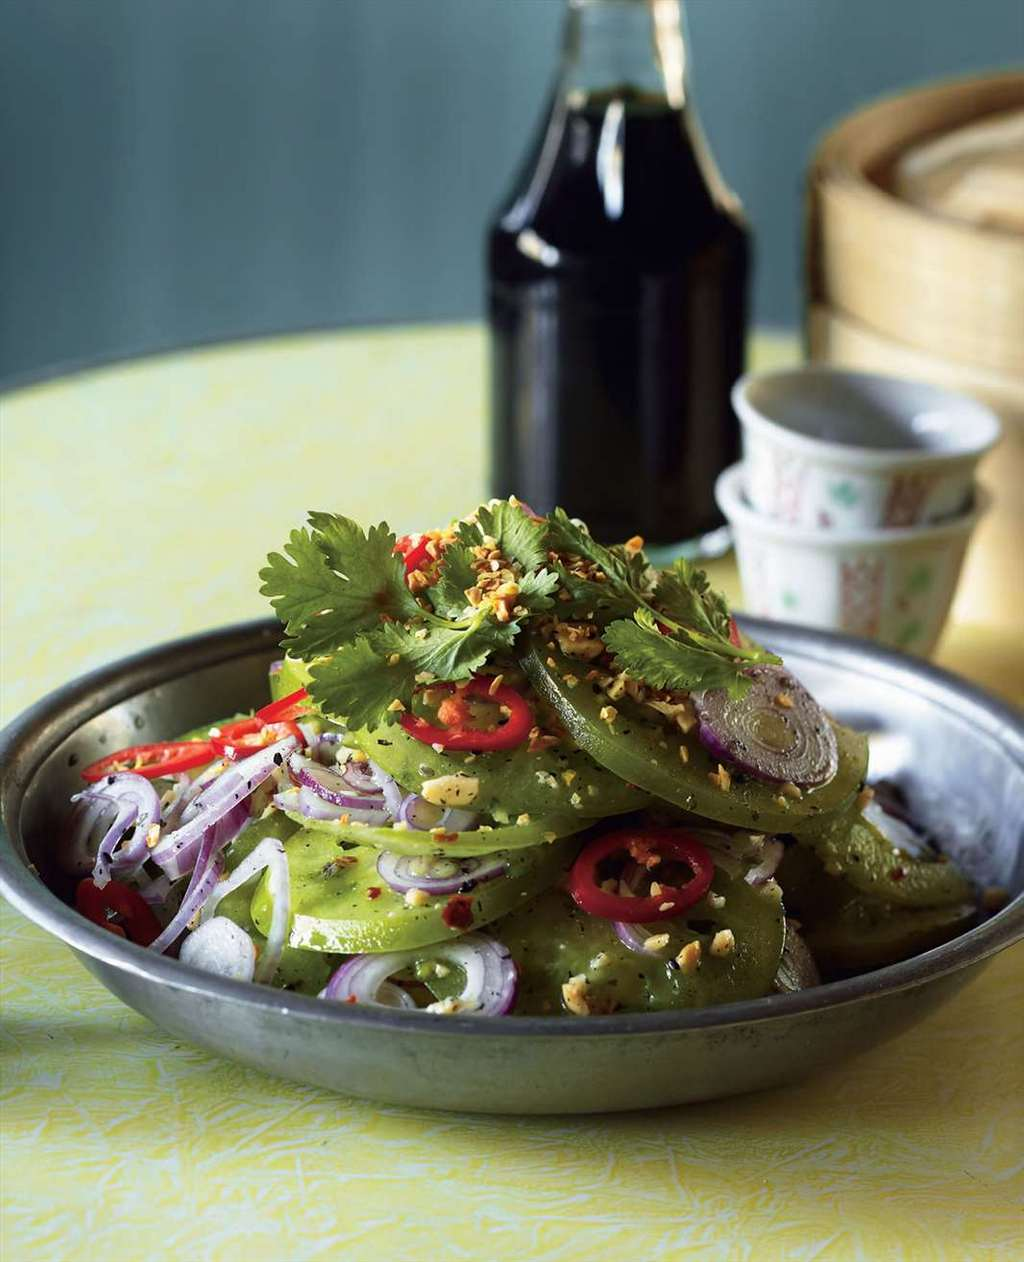 Green tomato salad - typical kind of salad at Inle Lake, Myanmar Photo: cooked.com